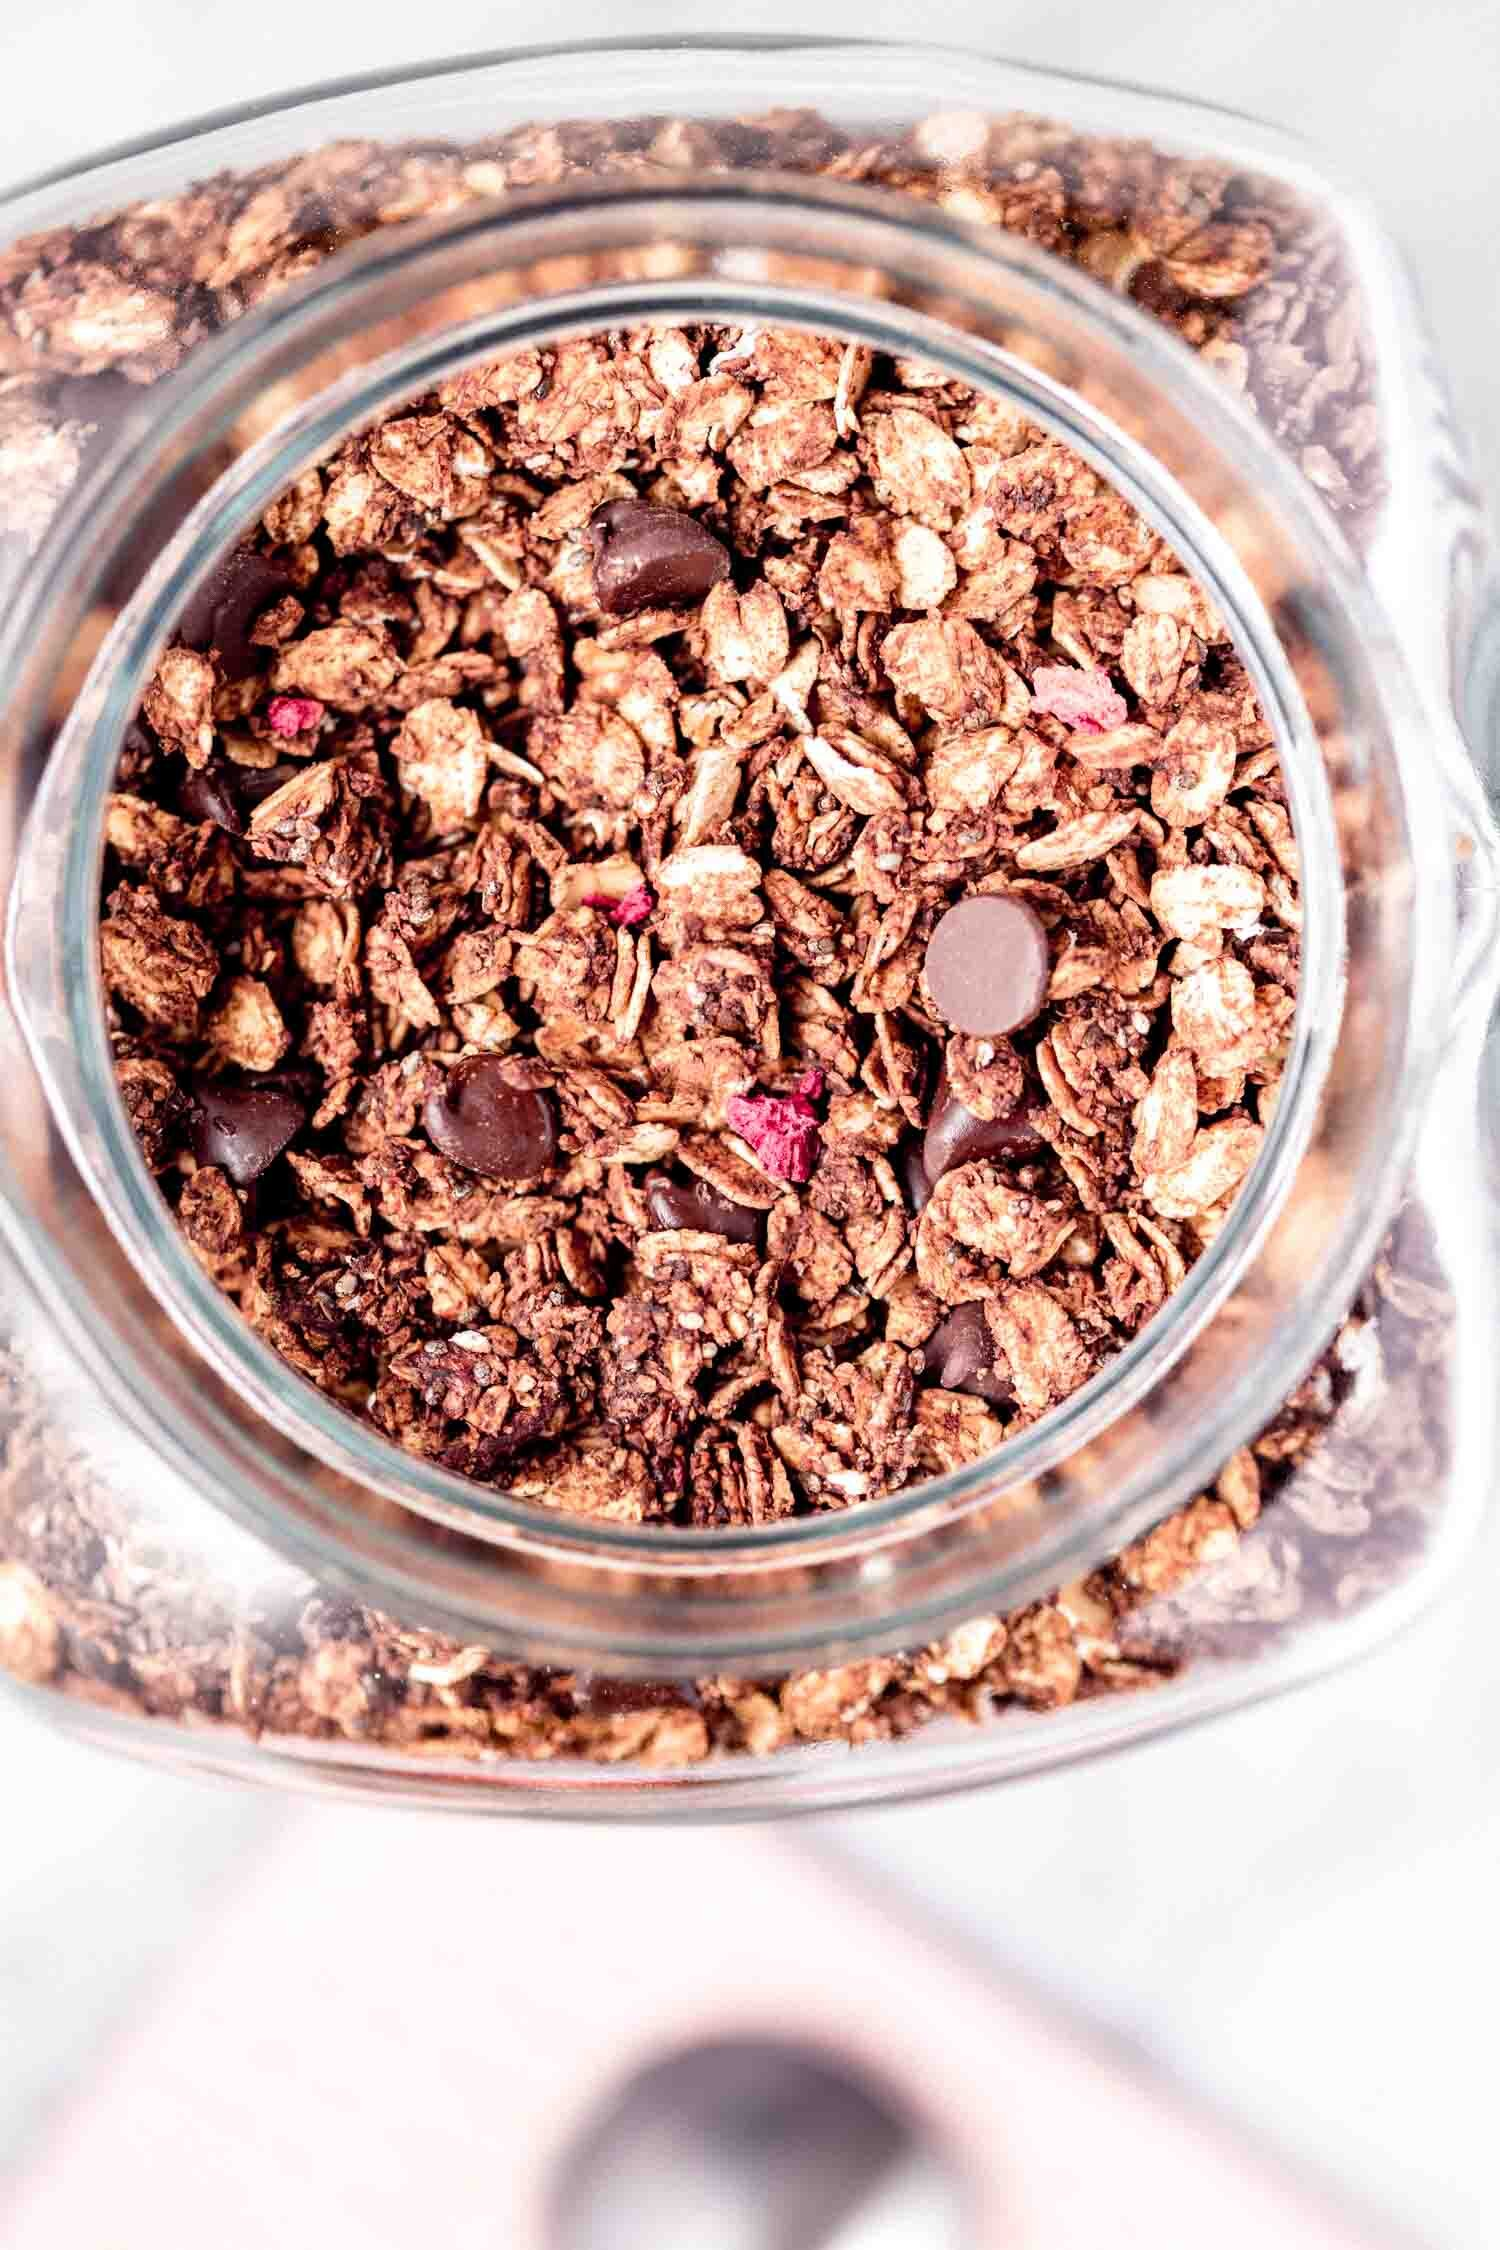 Chocolate and freeze-dried berries are the perfect combo in this crispy granola, inspired by store-bought granola. Vegan, gluten-free, oil-free, easy, with minimal prep time, yet makes a big batch.  #granola #granolarecipe #vegangranola #oilfreevegan #sugarfree #vegangranolarecipe #veganbreakfast #quickbreakfast #quicksnack #vegansnack #breakfastideas #breakfastideashealthy #breakfastrecipes #glutenfreerecipes